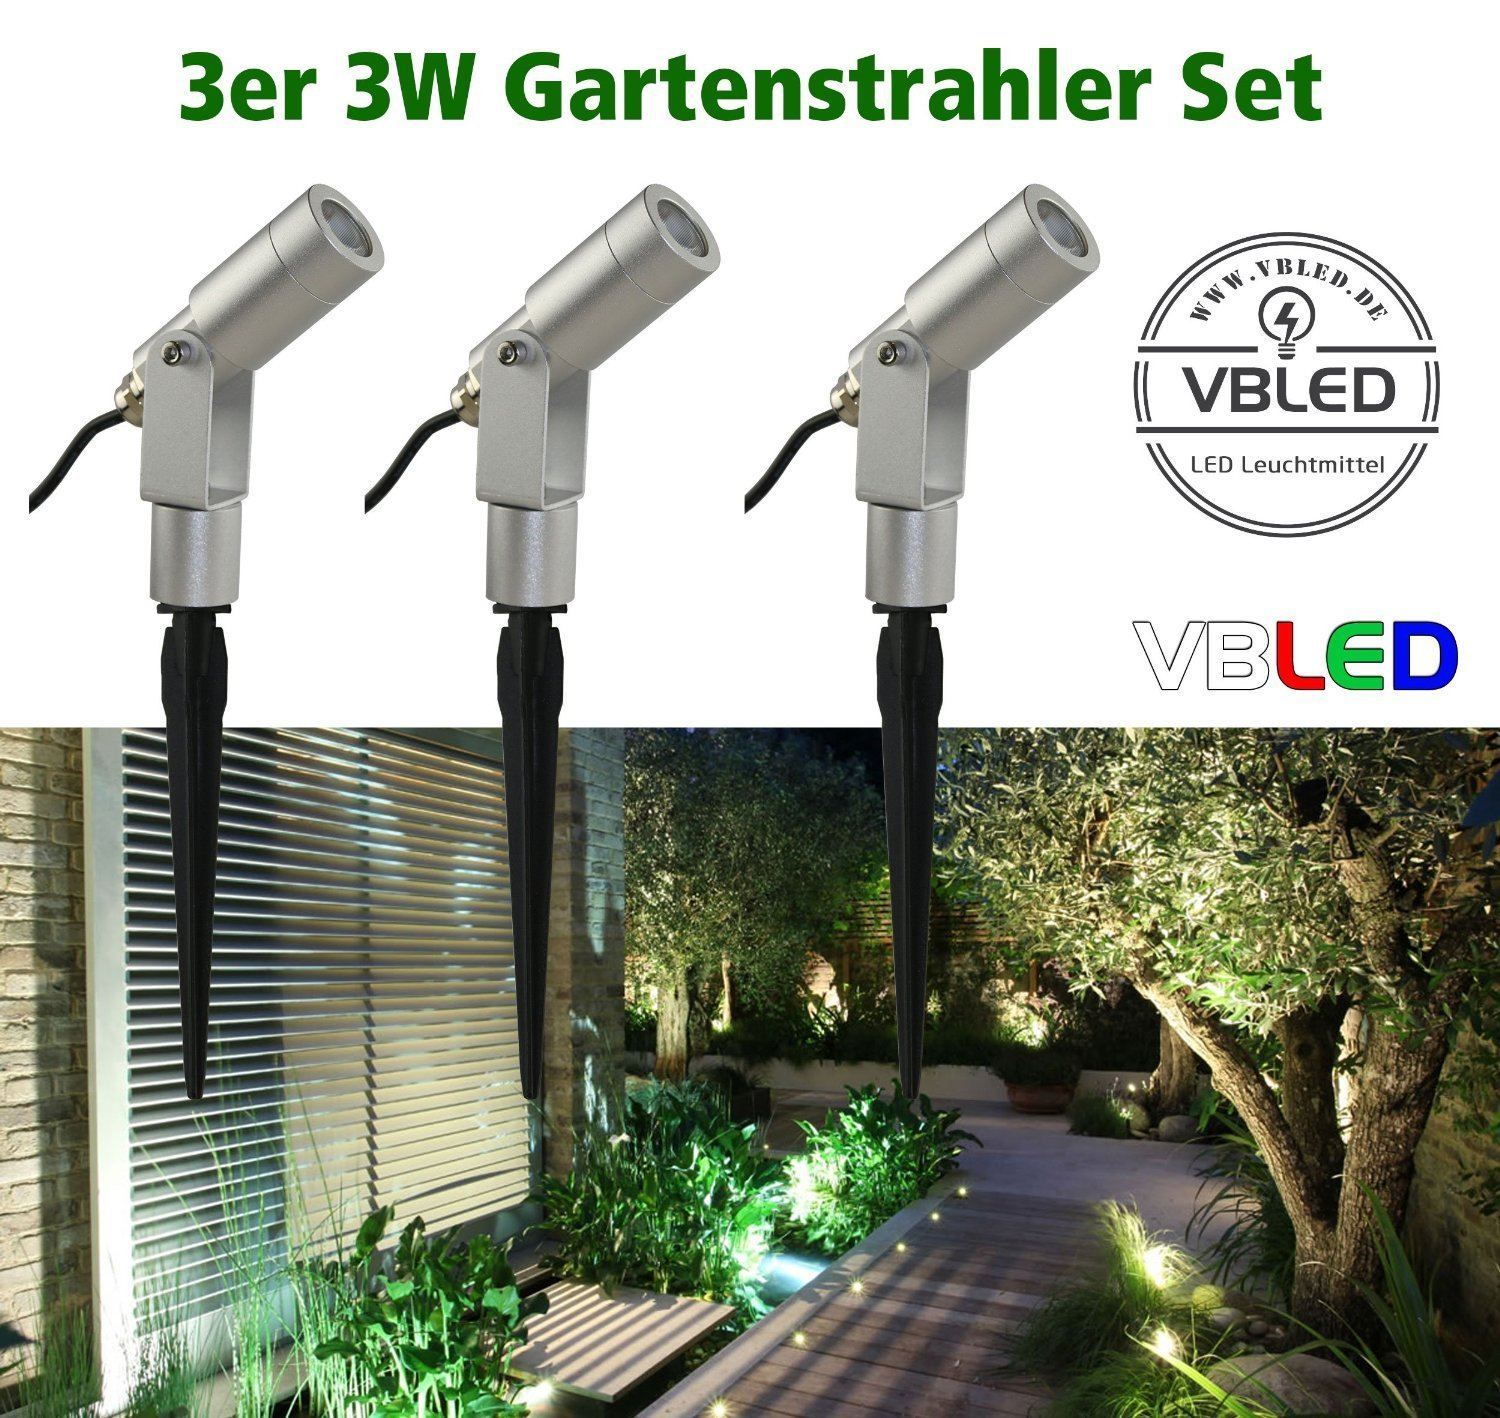 led gartenstrahler 3w set silber 3000k 11101 kit si 3k gartenbeleuchtung vbled. Black Bedroom Furniture Sets. Home Design Ideas